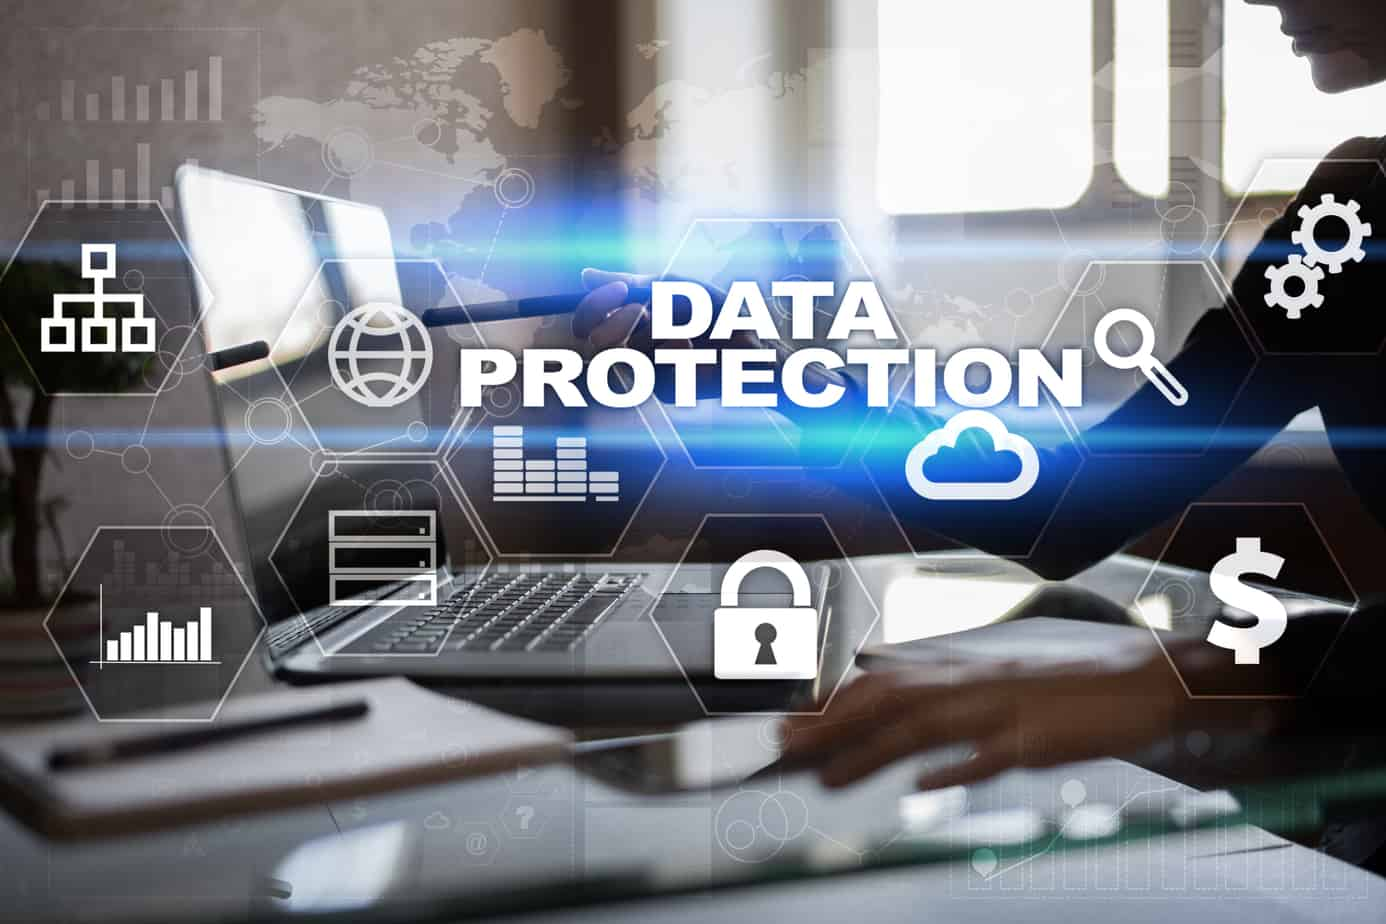 data-protection-cyber-security-information-safety-technology-business-concept-95499354